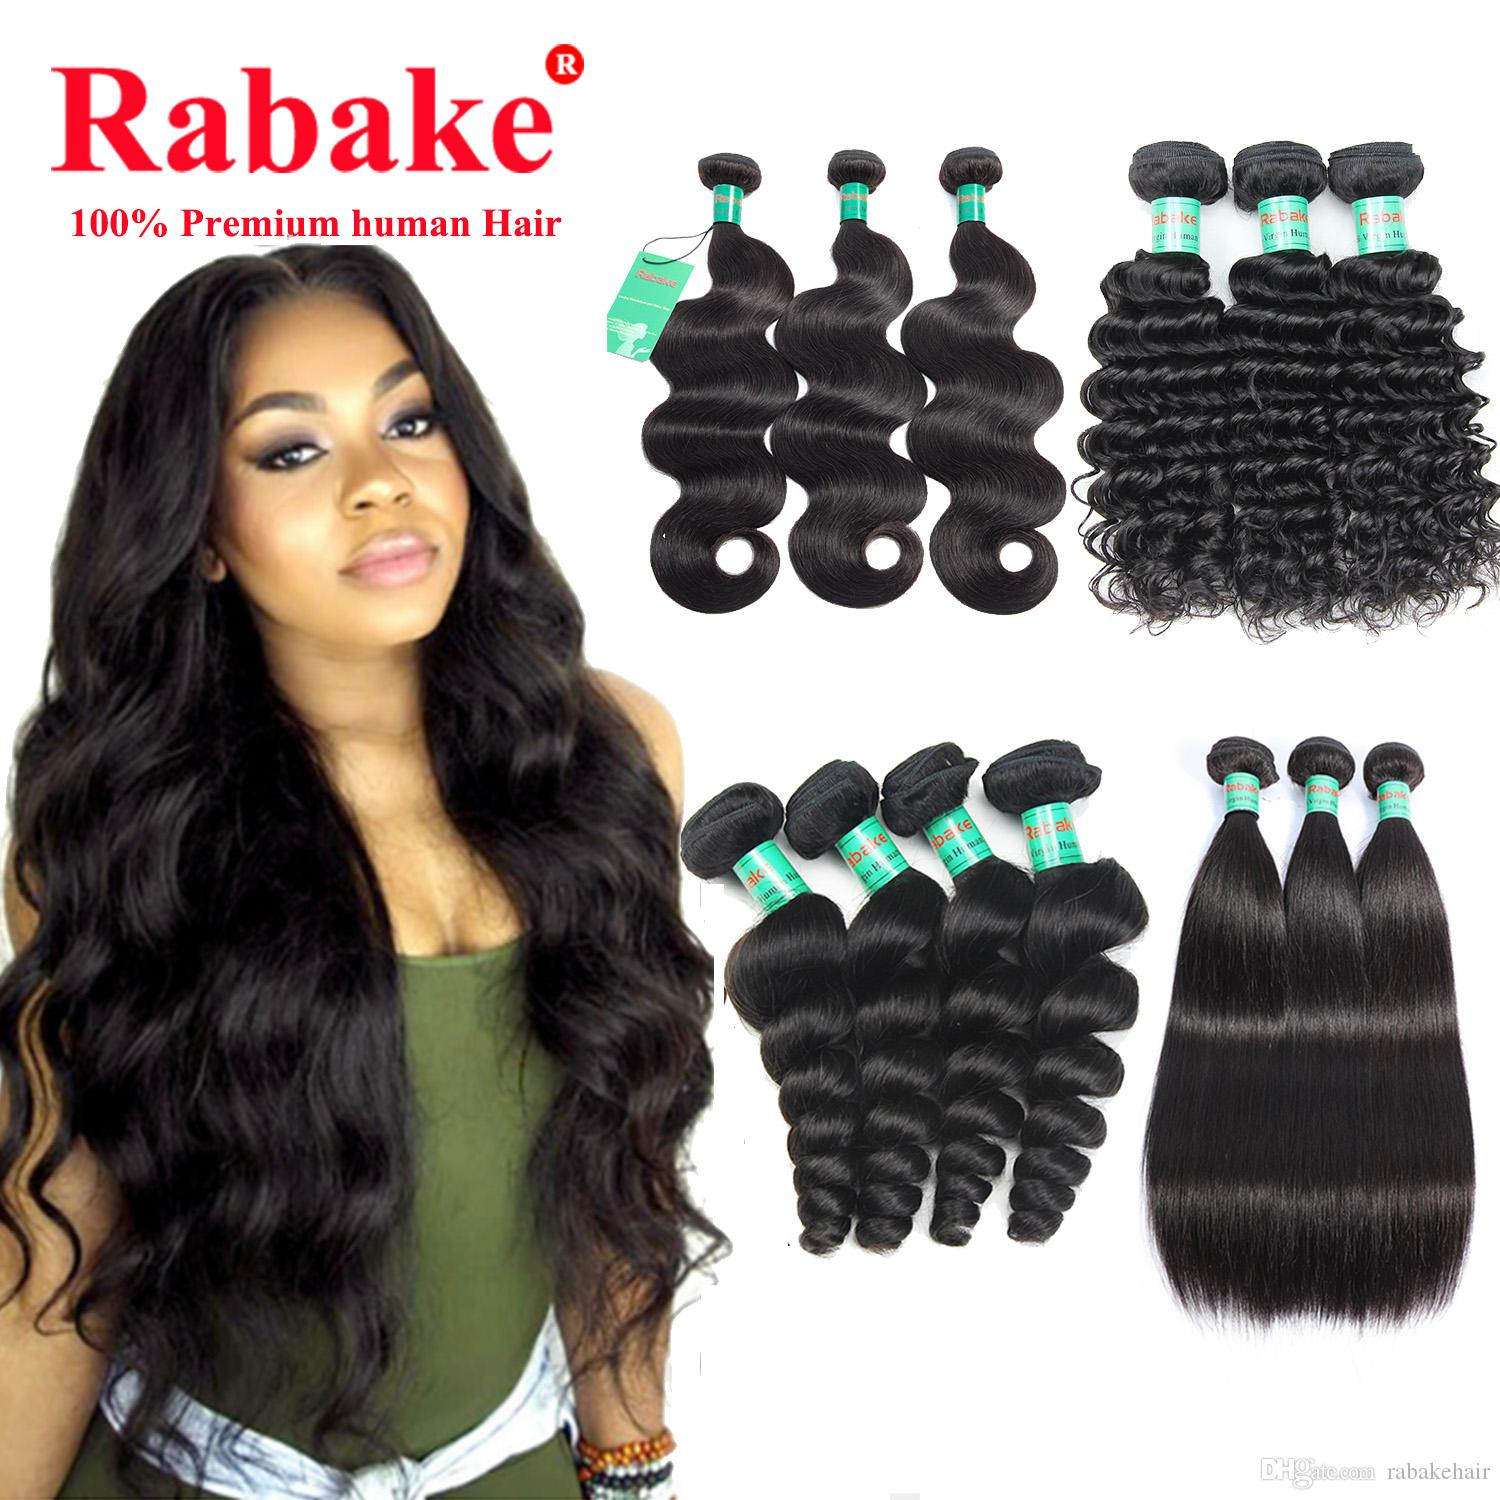 Hair Extensions & Wigs Human Hair Weaves Wholesale Brazilian Virgin Hair Loose Wave 10 Bundles Factory Price 100% Unprocessed Remy Human Hair Weave Shipping Free